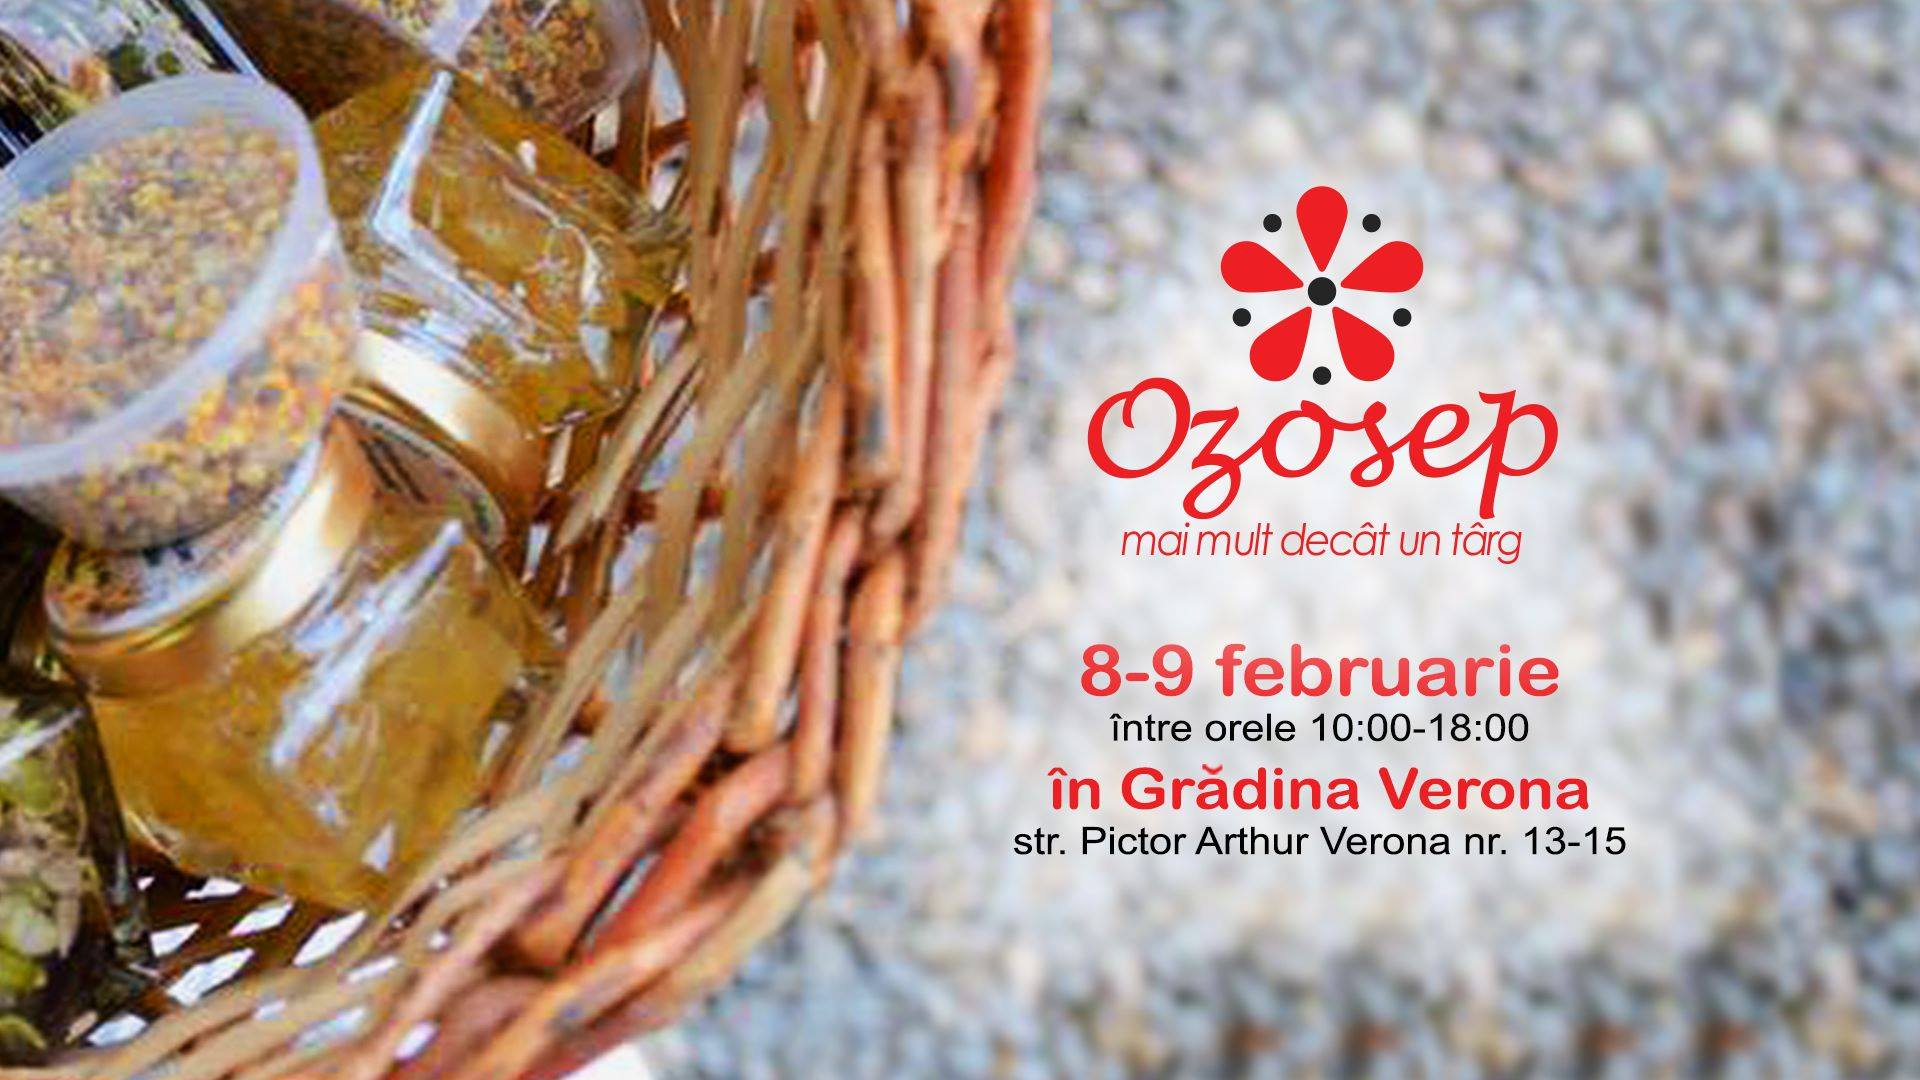 Ozosep targ la Carturesti weekend 7-9 februarie